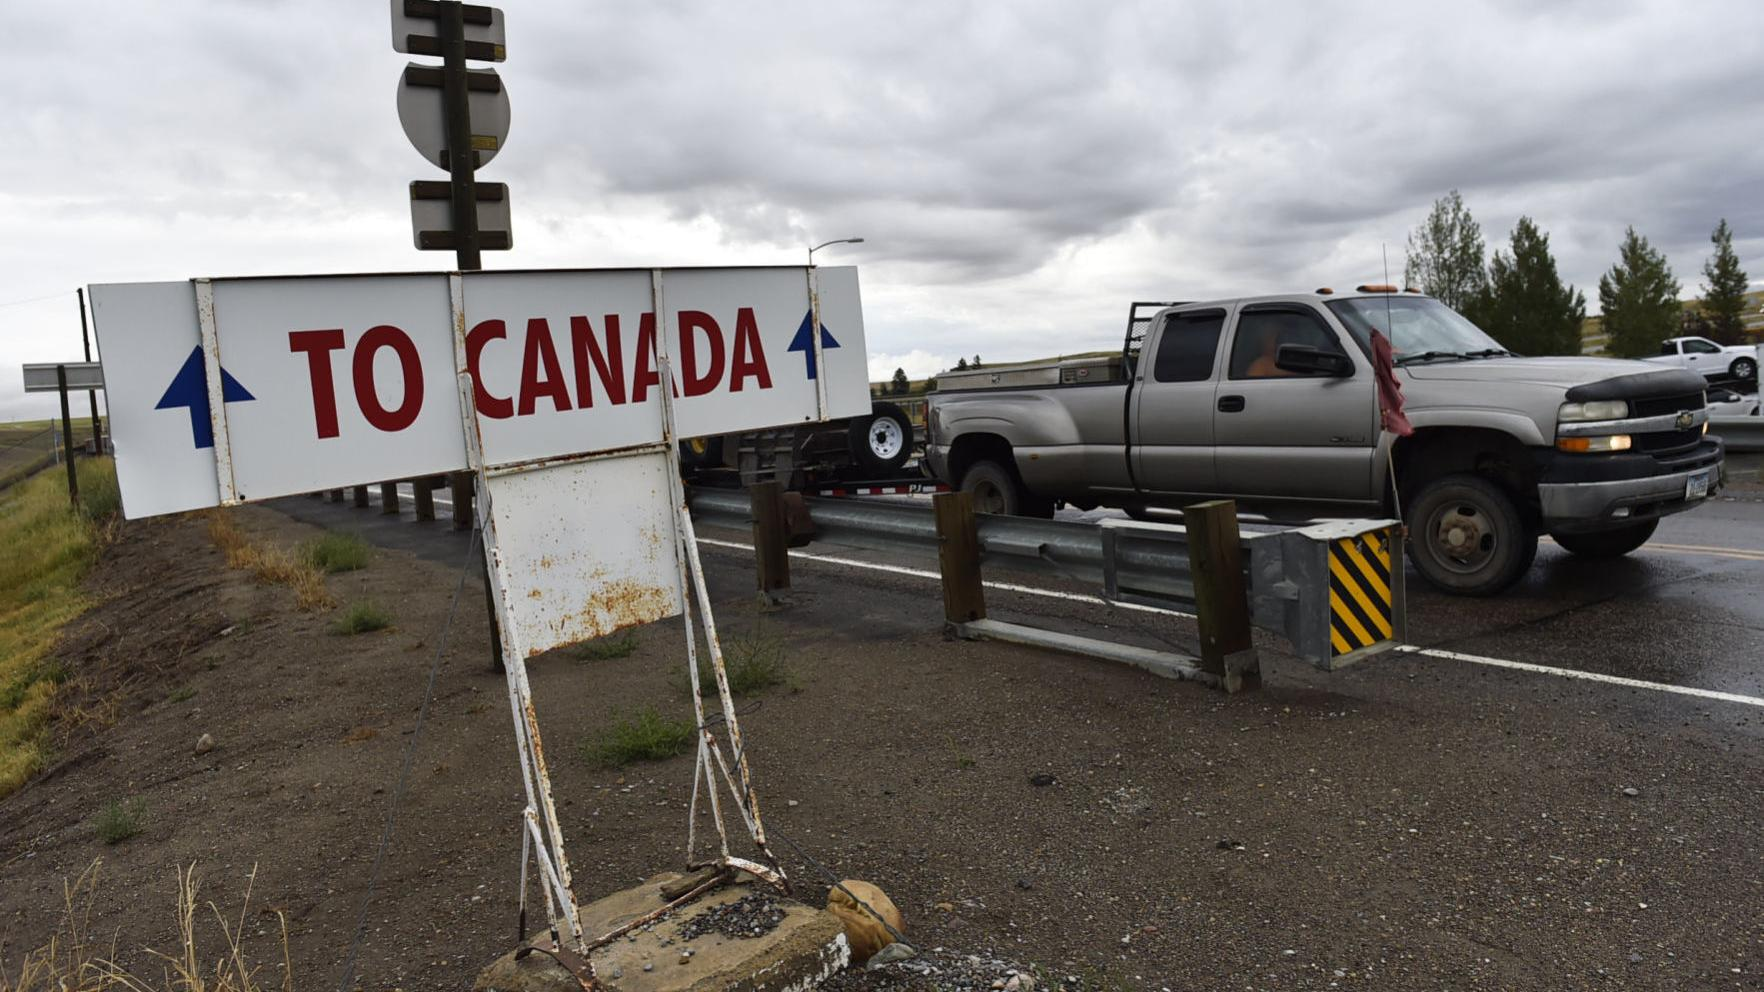 Montana officials frustrated with continued limits on travel from Canada